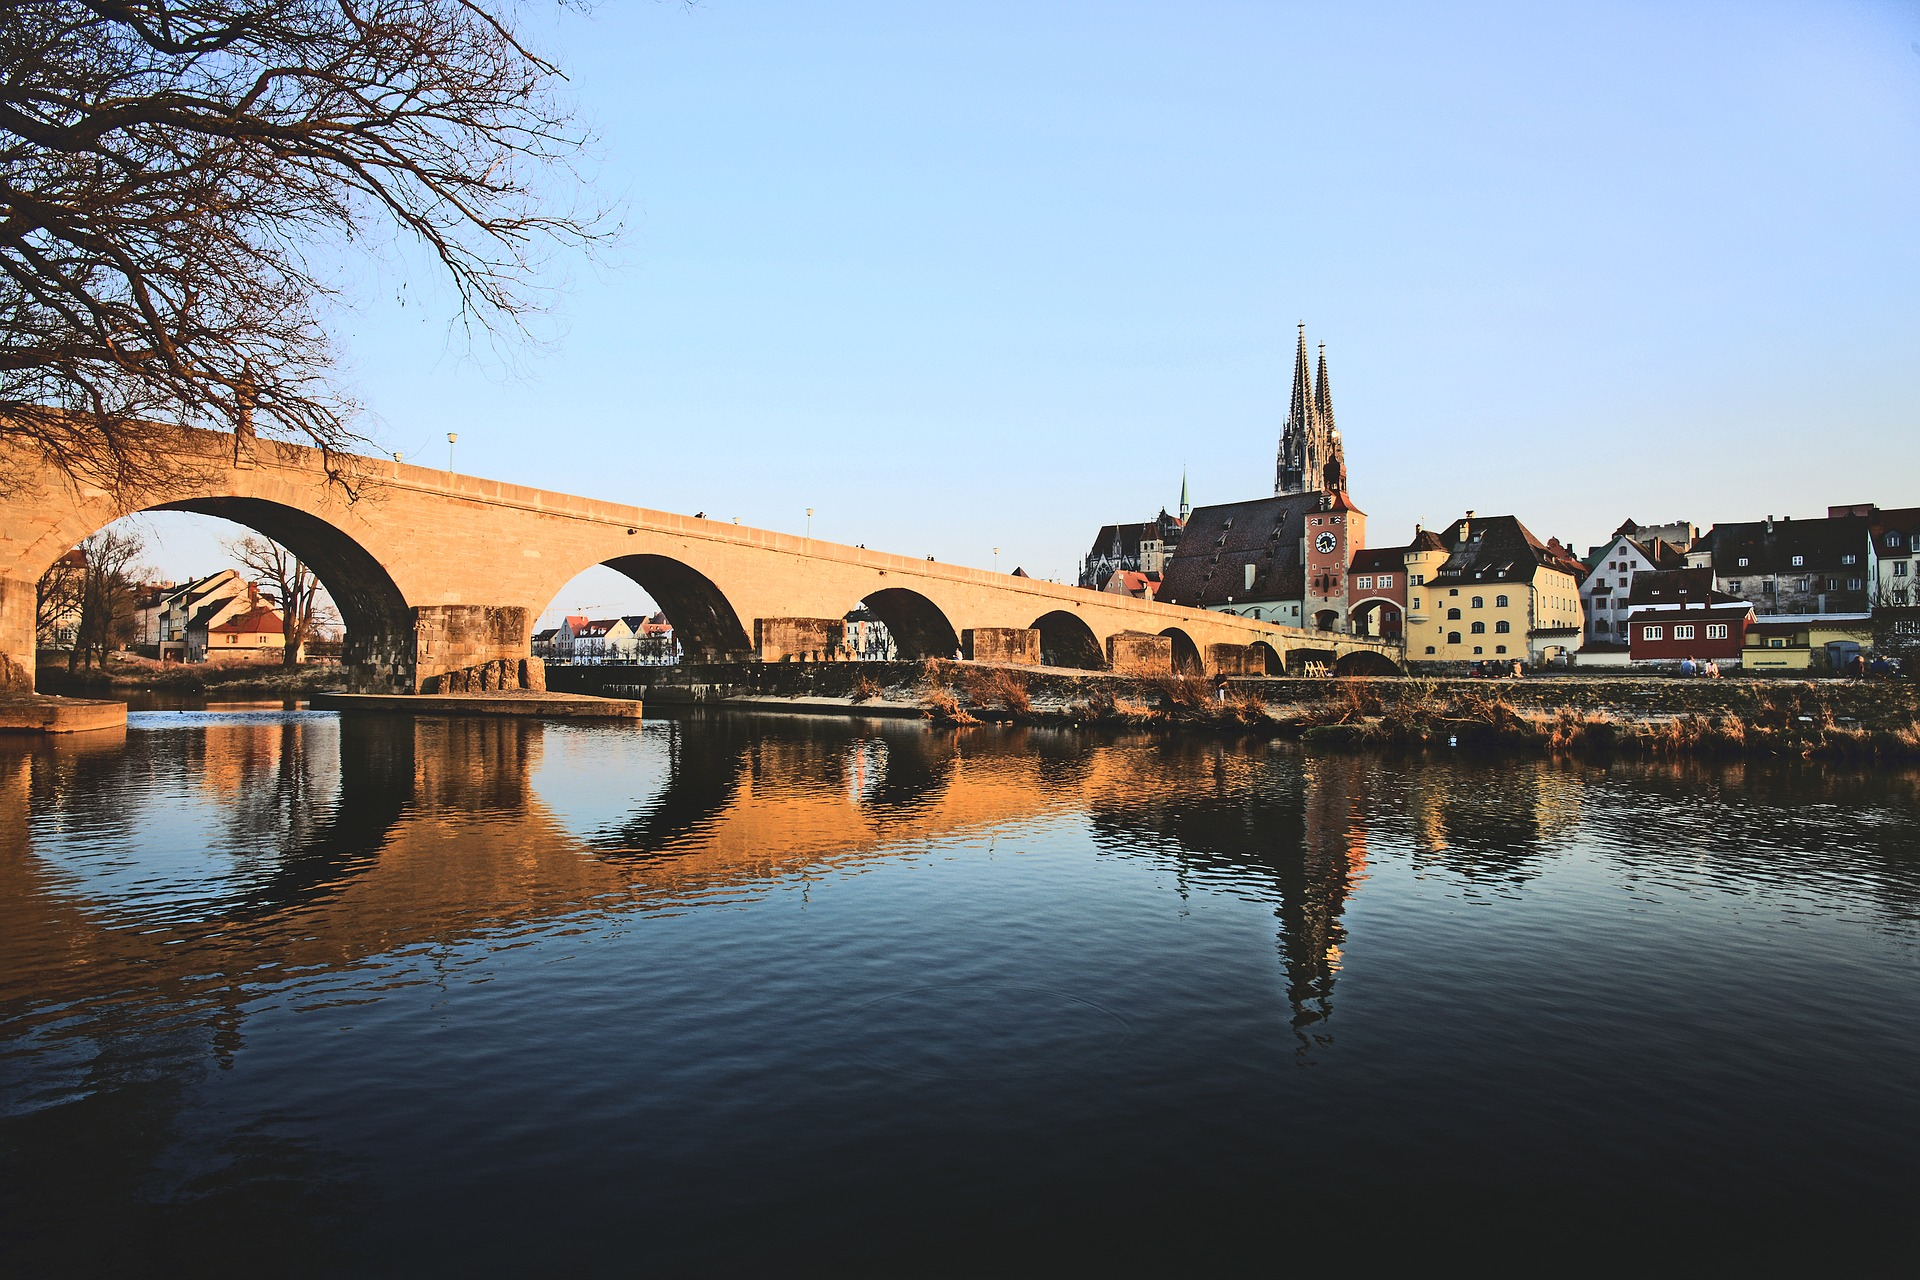 Regensburg, https://pixabay.com/it/photos/regensburg-baviera-germania-2112927/ andreas160578 cc0